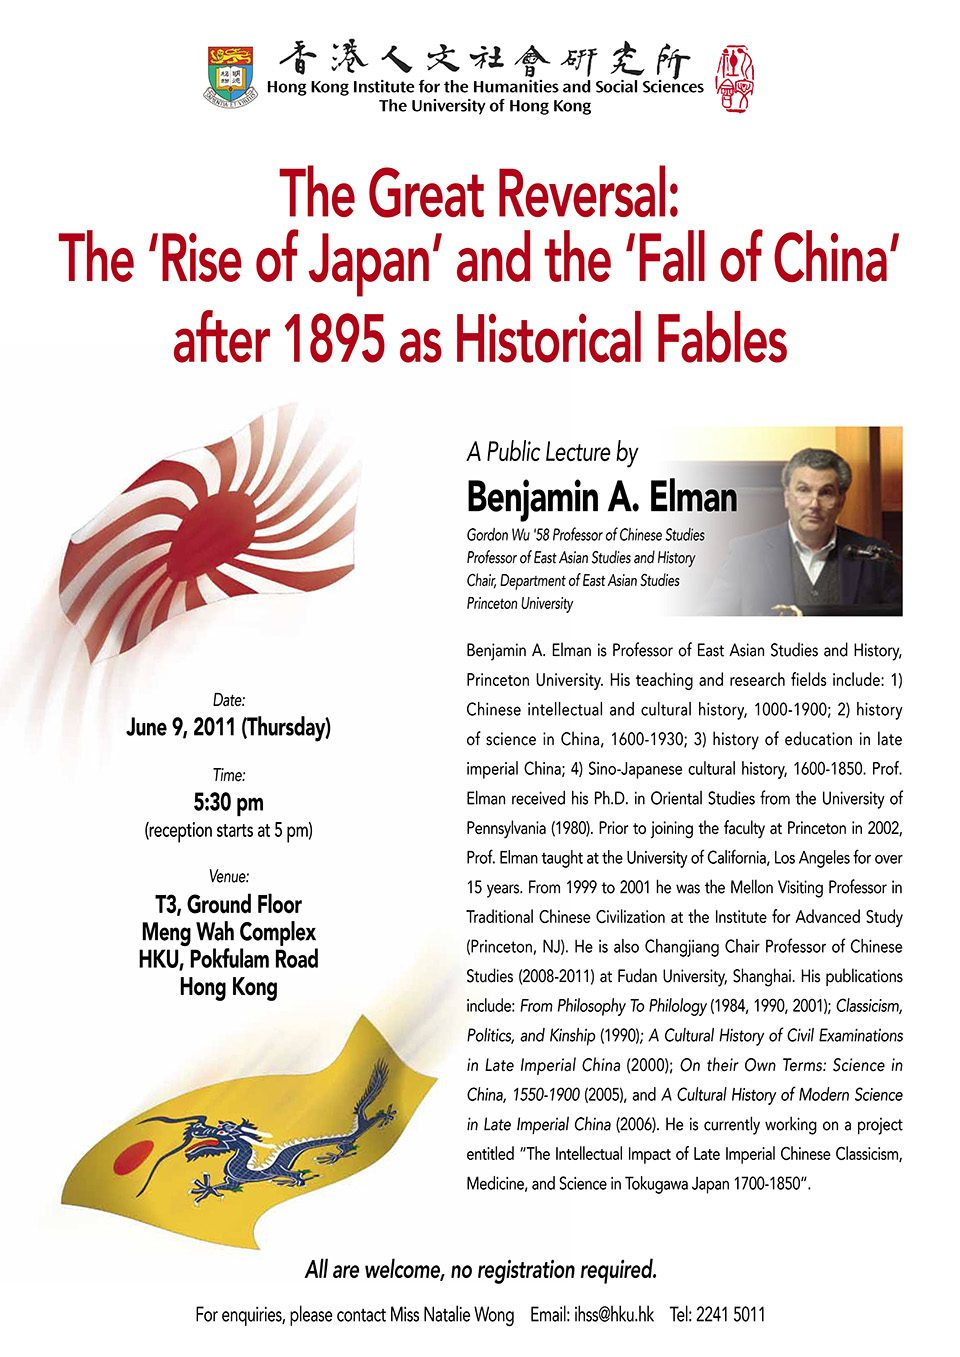 "Distinguished Lecture on ""The Great Reversal: The 'Rise of Japan' and the 'Fall of China' after 1895 as Historical Fables"" by Professor Benjamin Elman (June 9, 2011)"